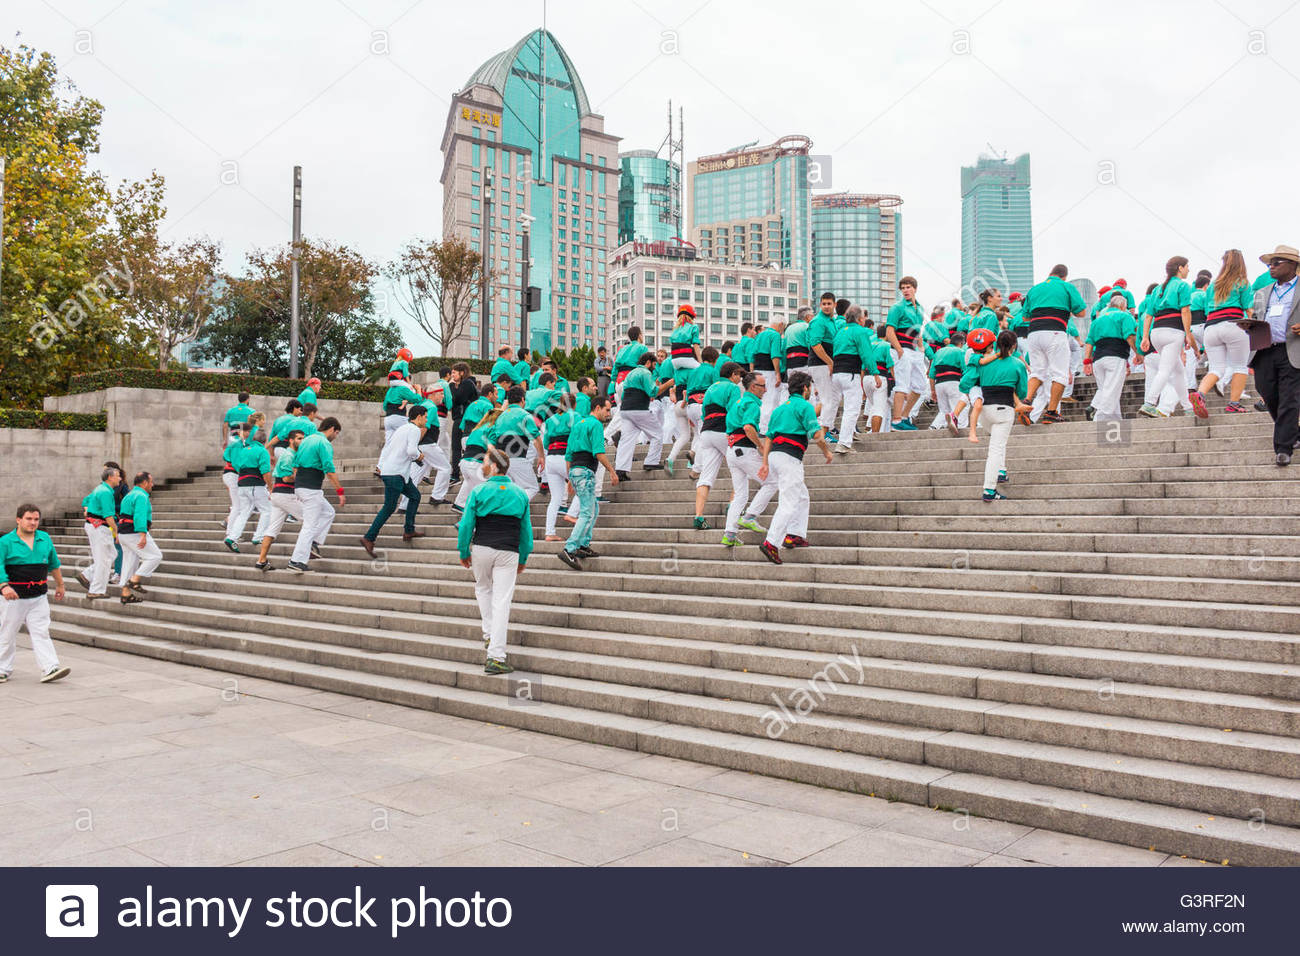 Castellers on the Bund in Shanghai - Stock Image